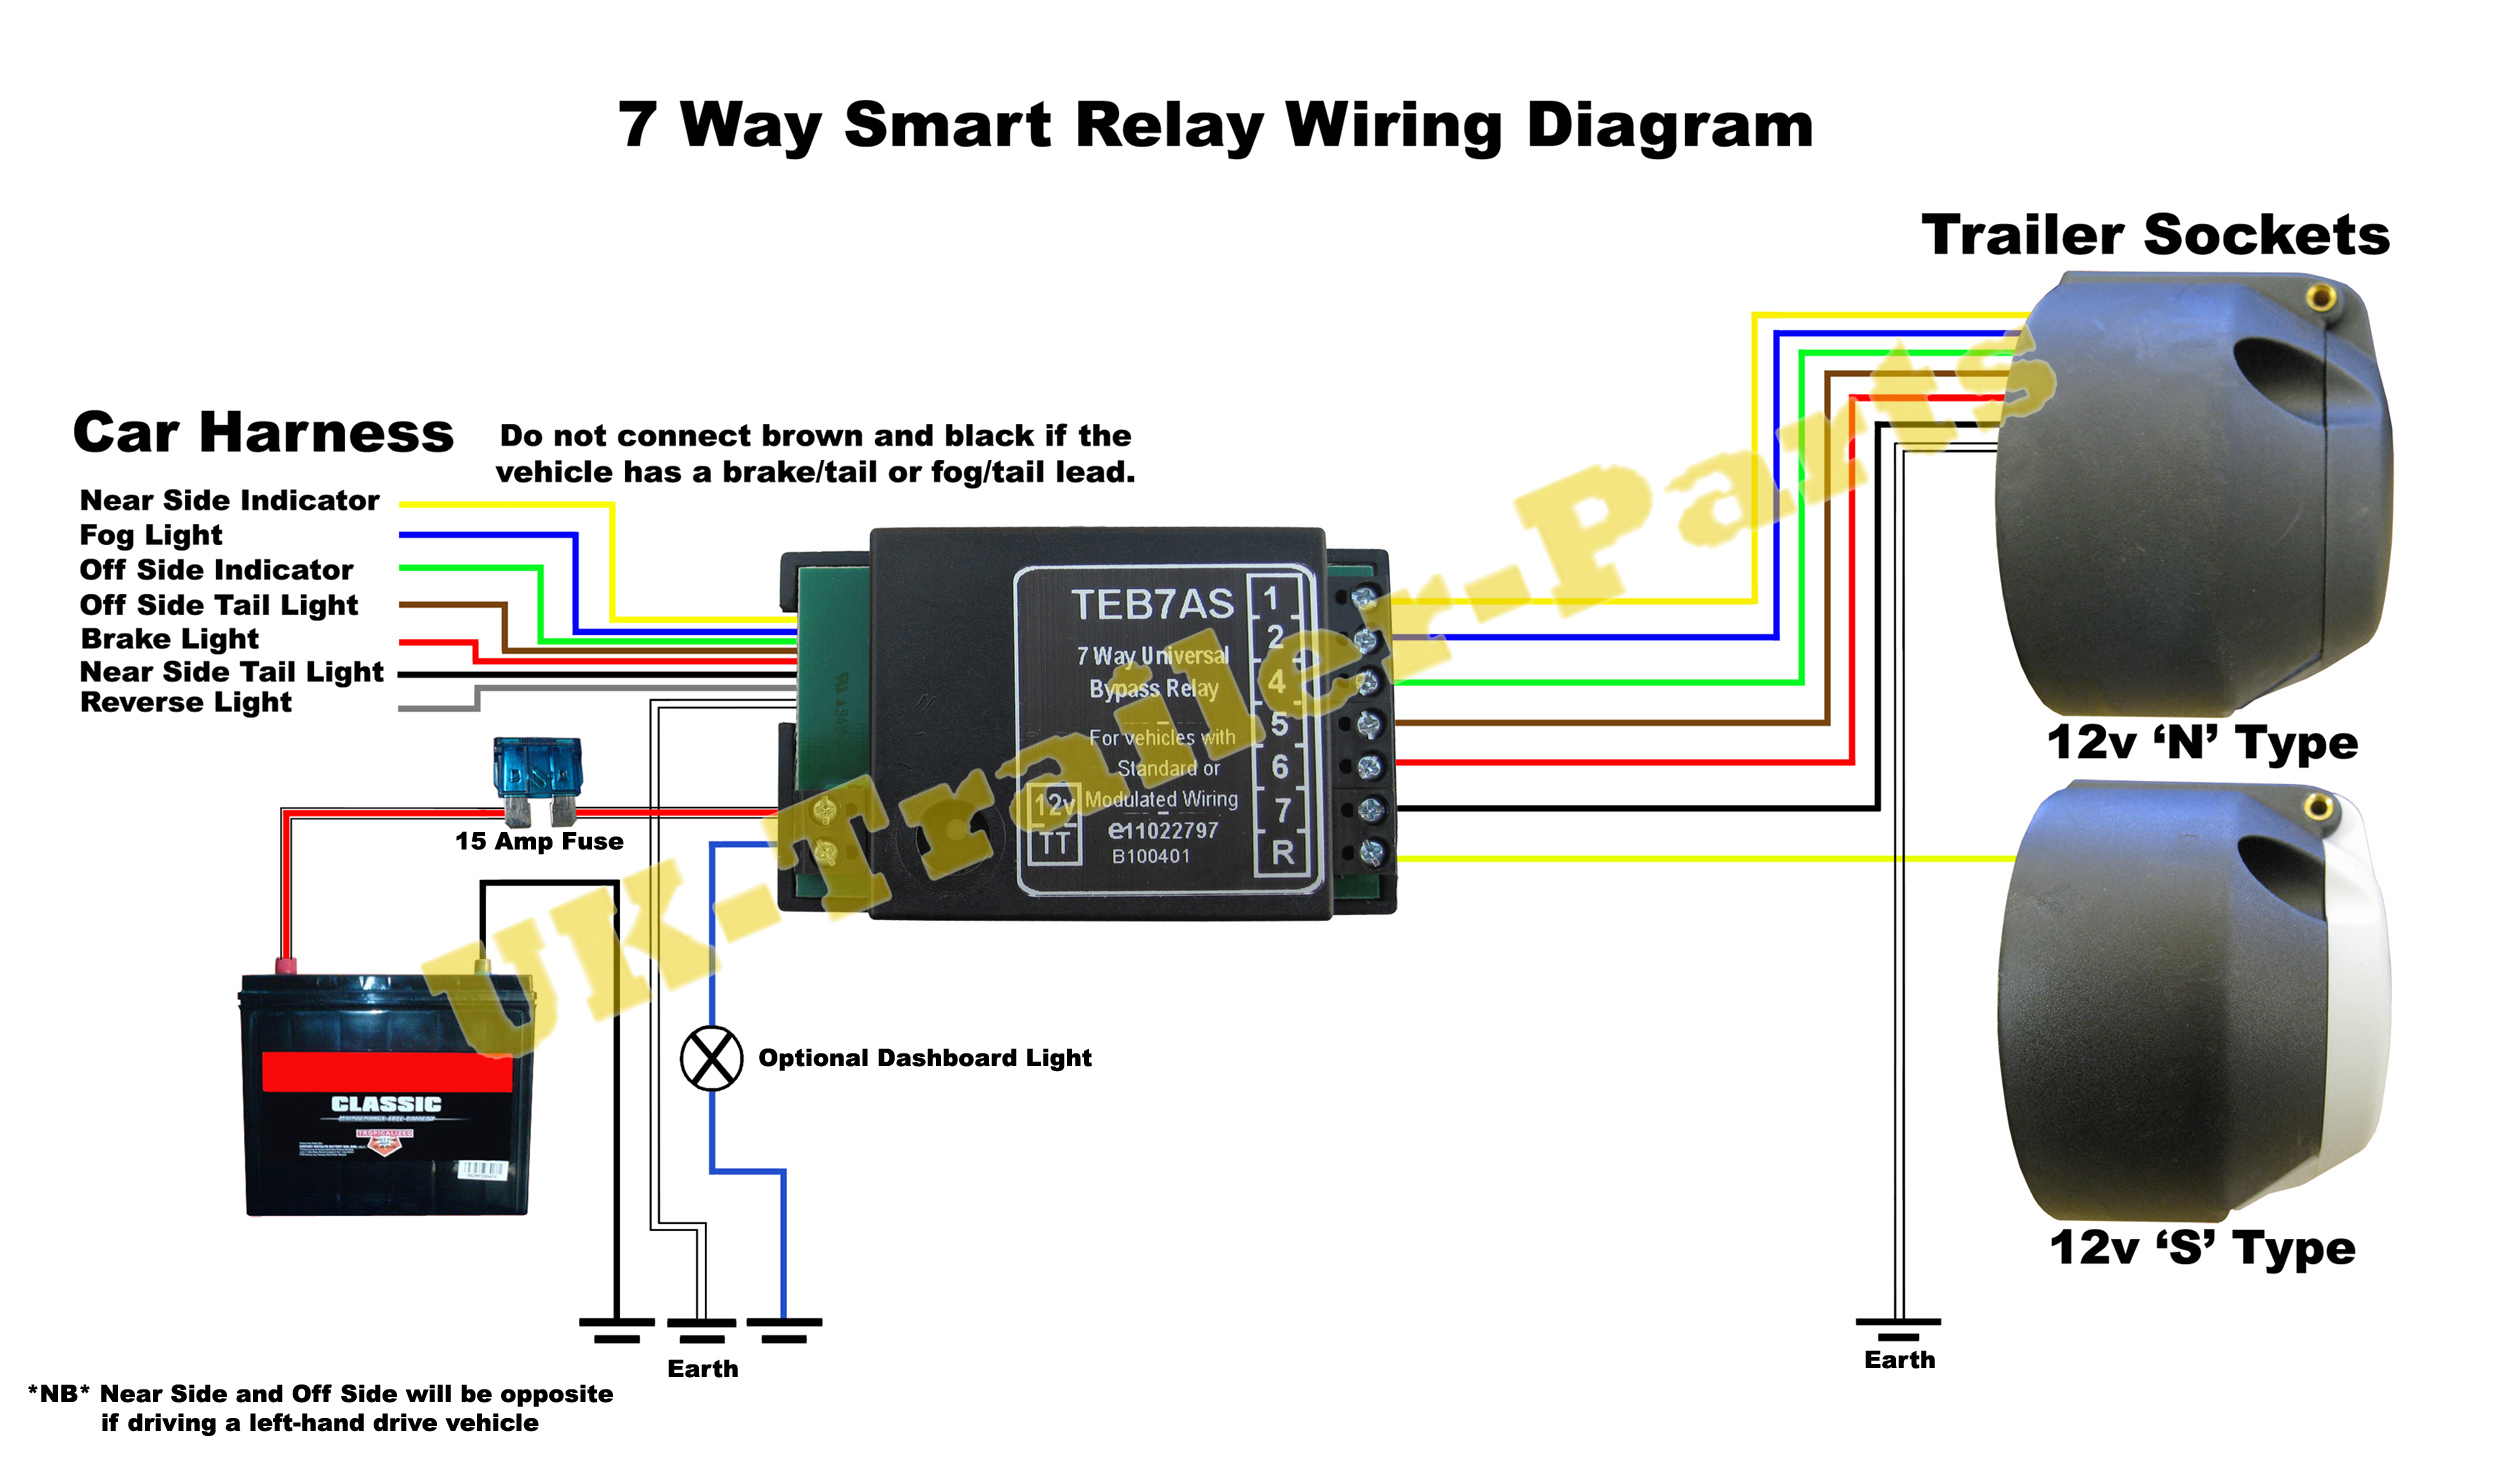 smart relay wiring diagram2 bmw towbar wiring diagram bmw wiring diagrams instruction nissan qashqai towbar wiring diagram at mifinder.co